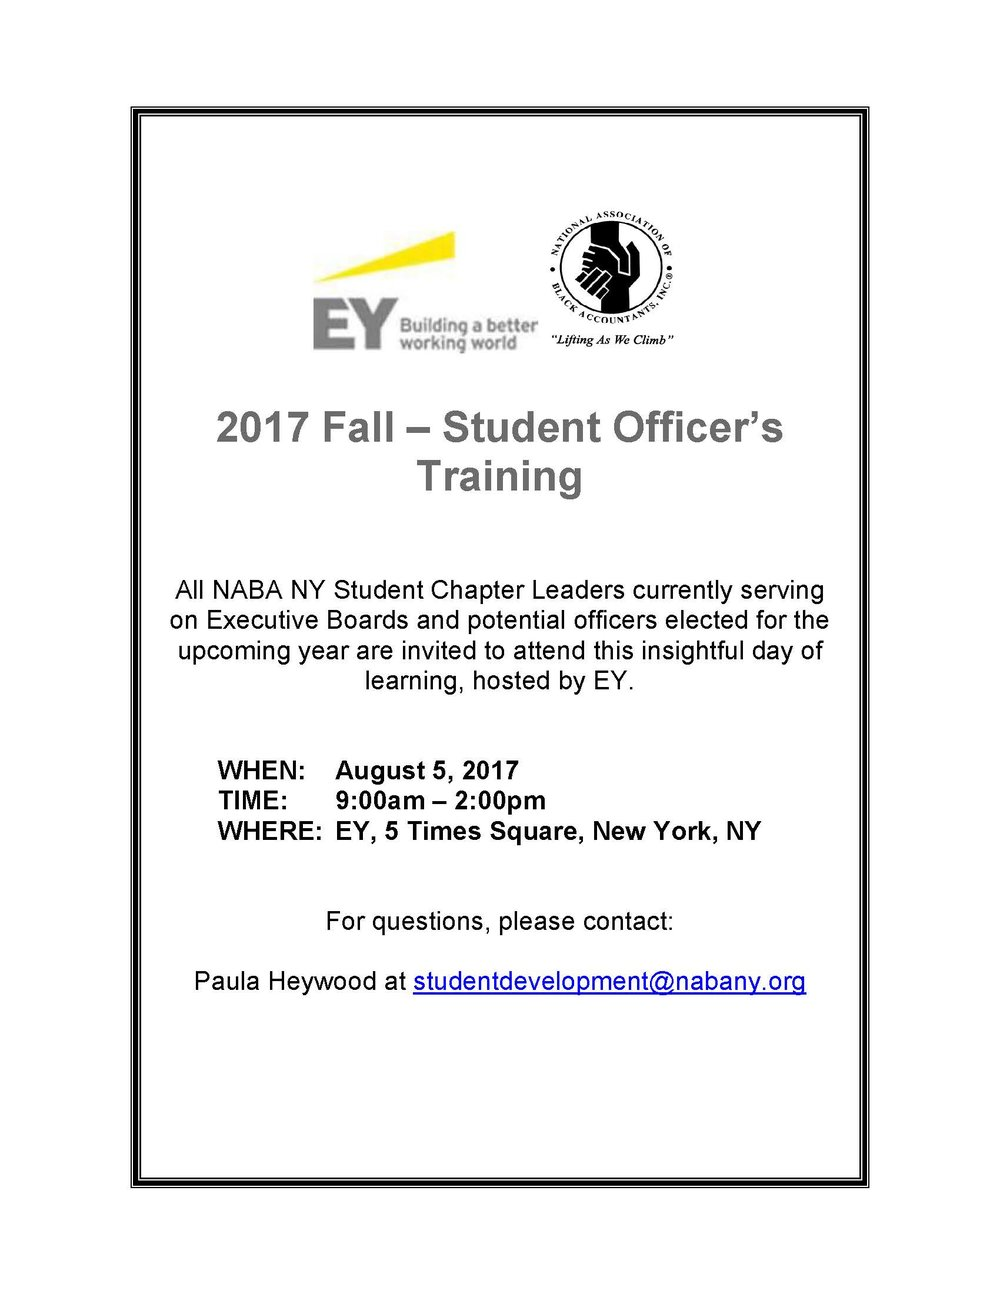 EY 2017 Fall Officer's Training_Updated.jpg